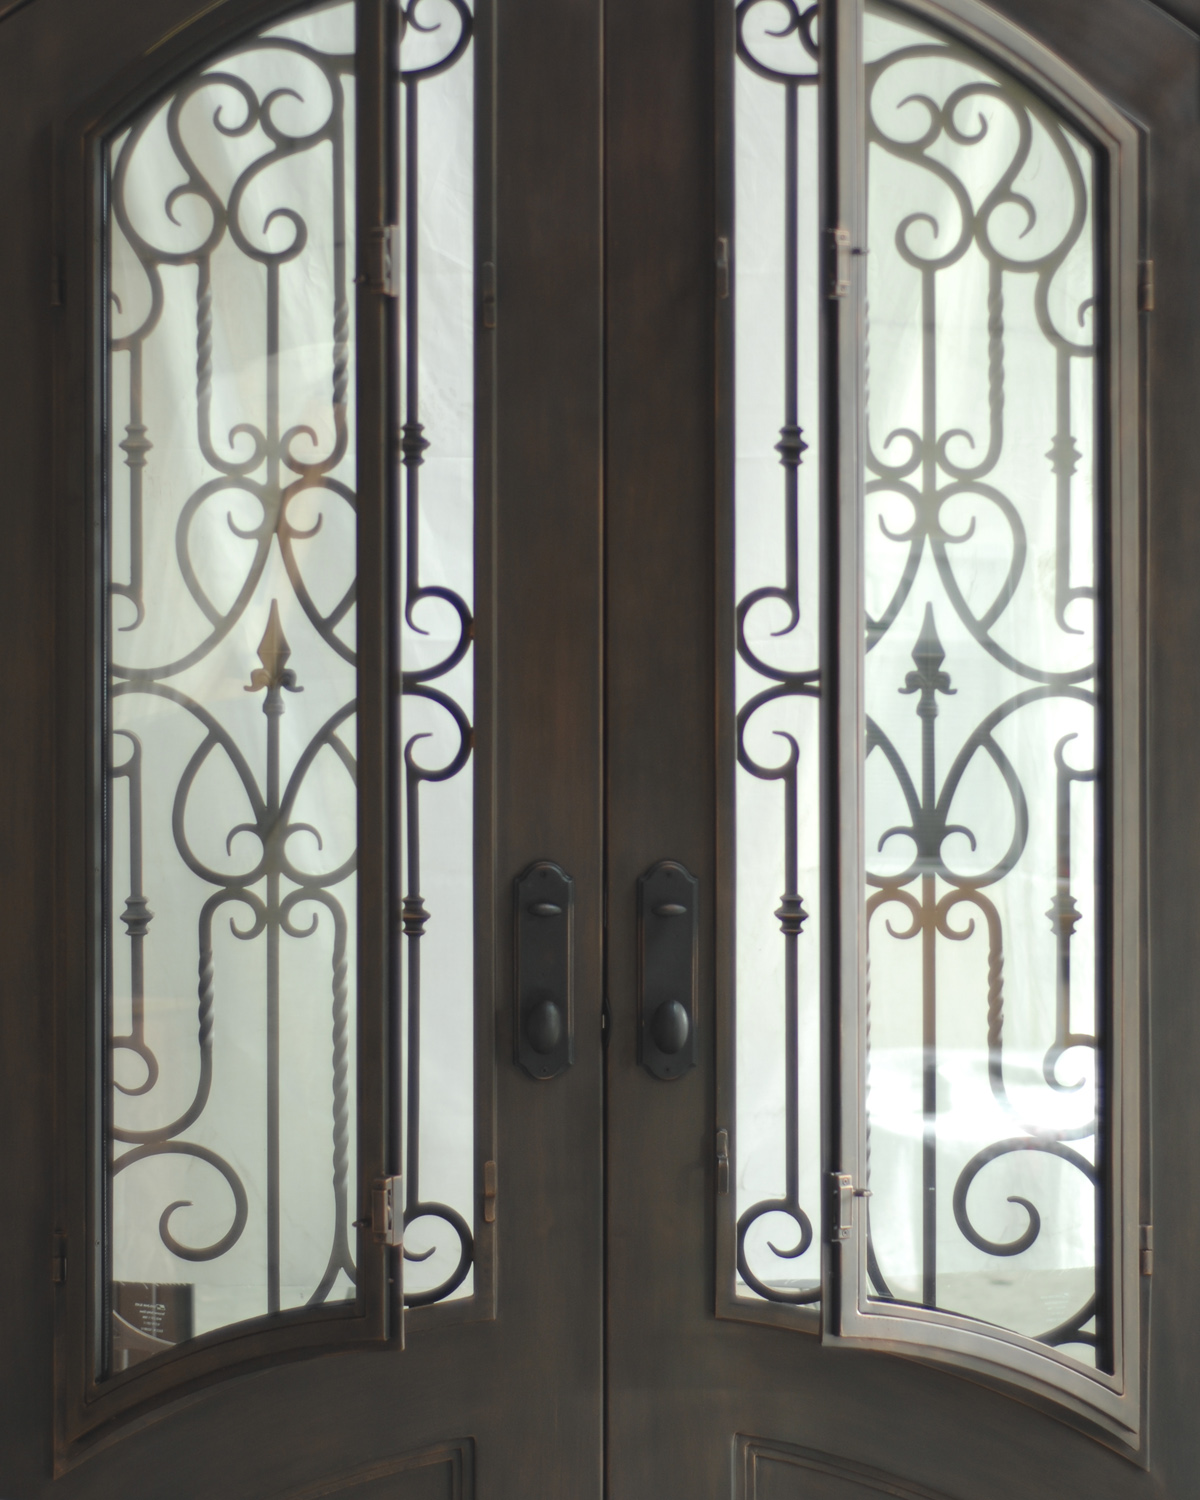 Verona entrance door wrought iron scrollwork